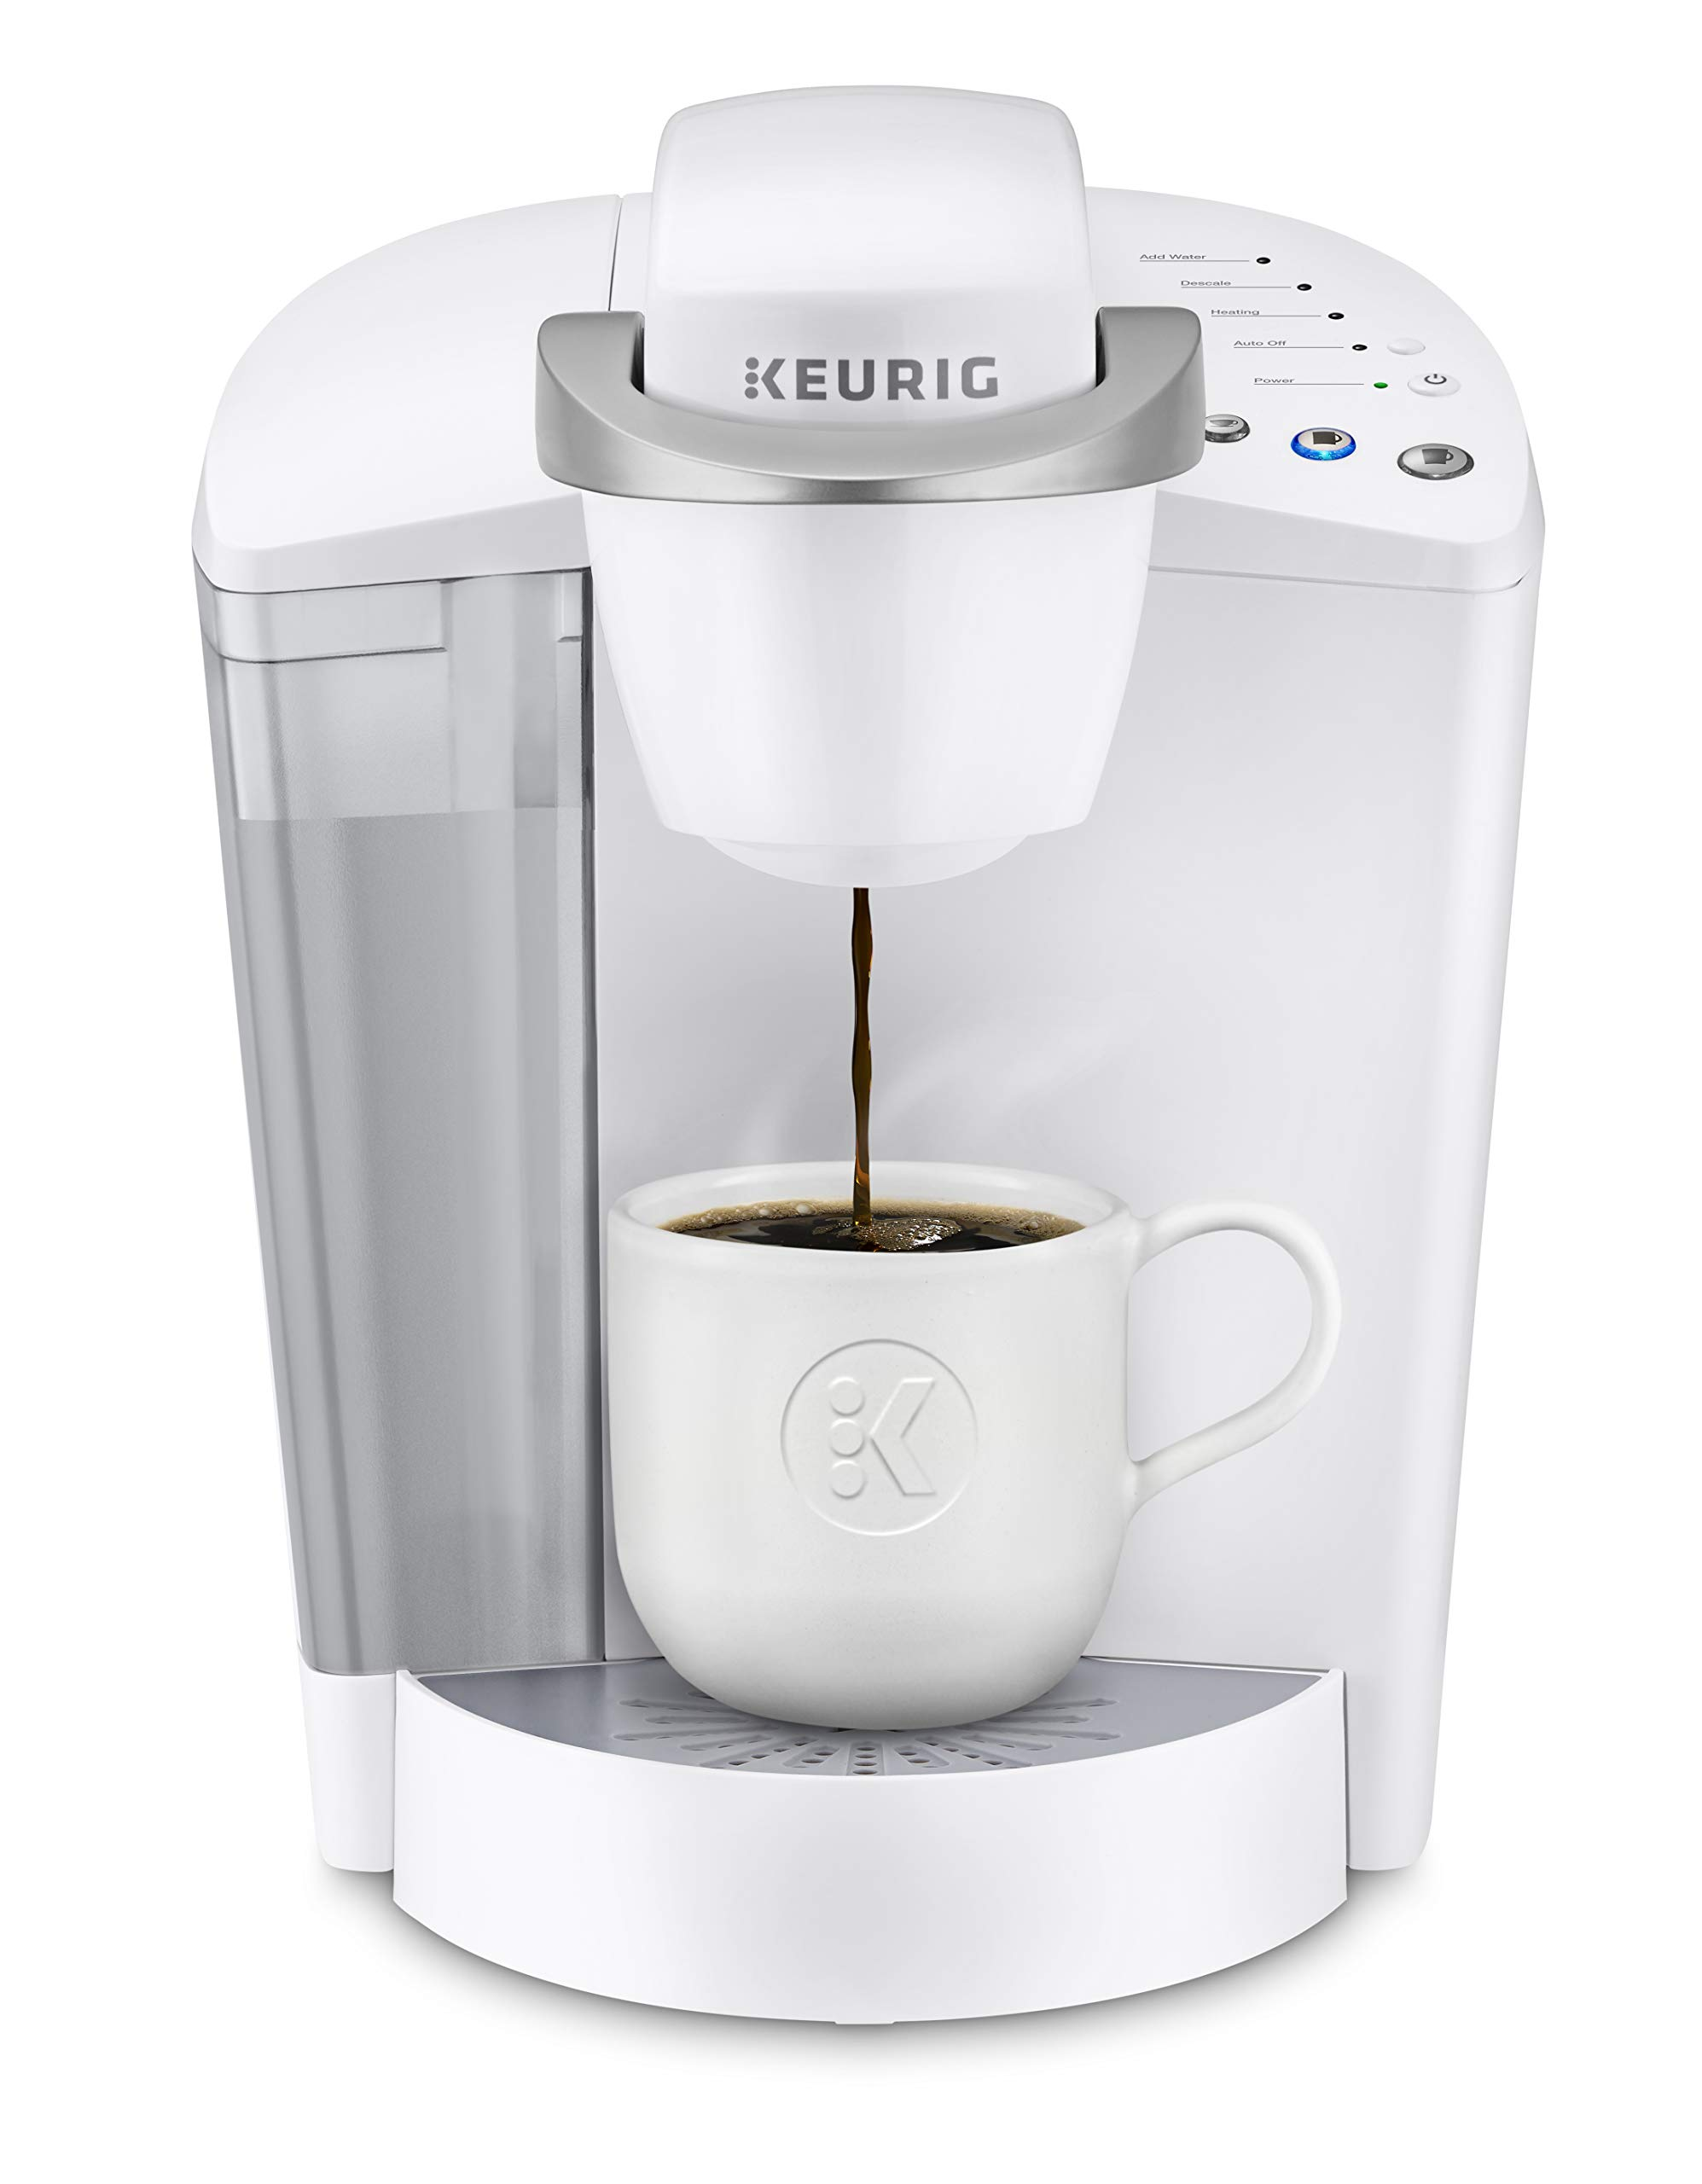 Keurig K-Classic Coffee Maker, Single Serve K-Cup Pod Coffee Brewer, 6 to 10 oz. Brew Sizes, White by Keurig